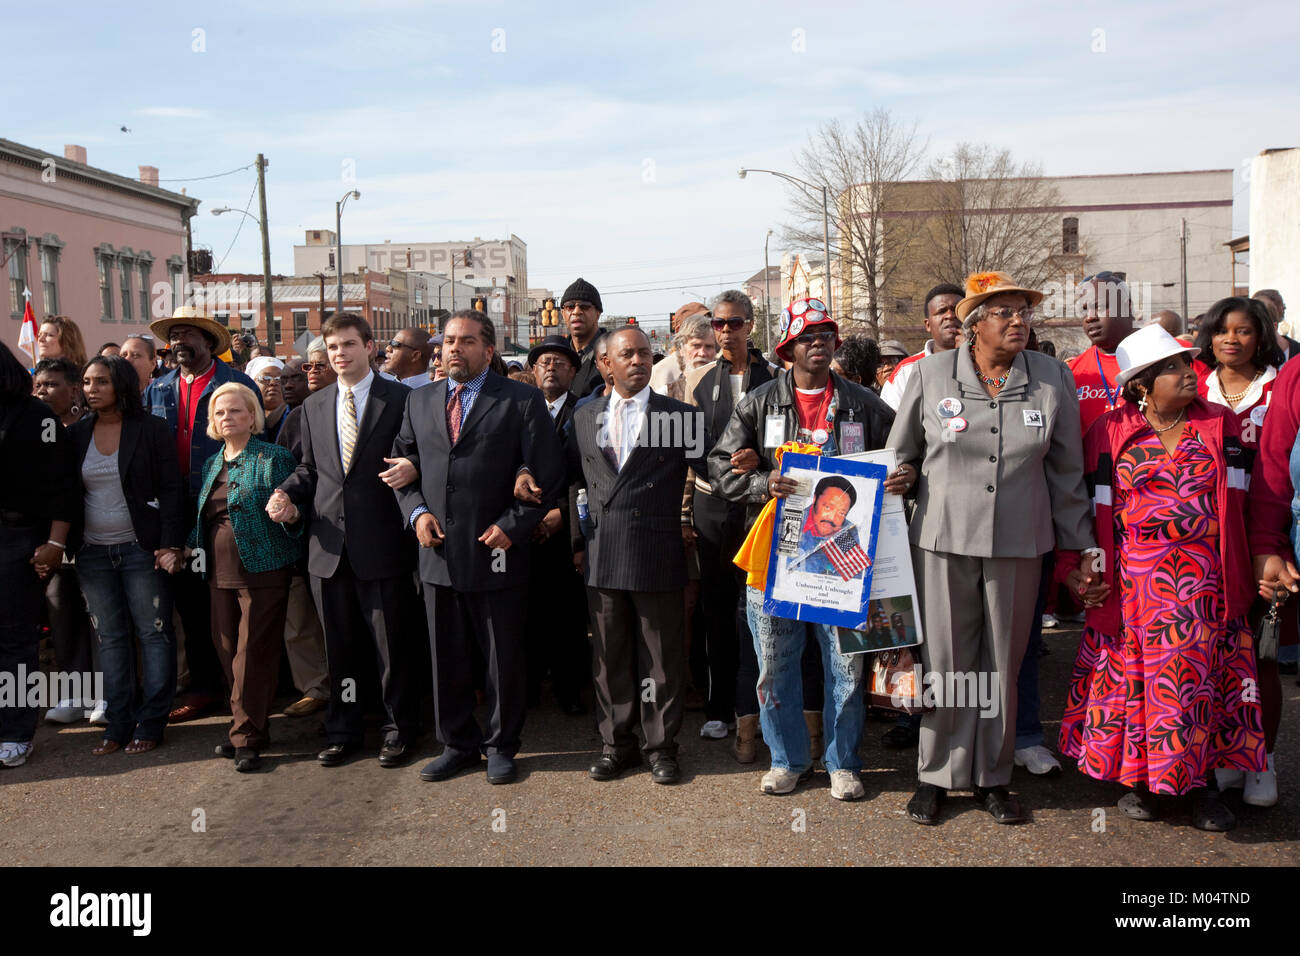 46th Anniversary of the Civil Rights March - Stock Image